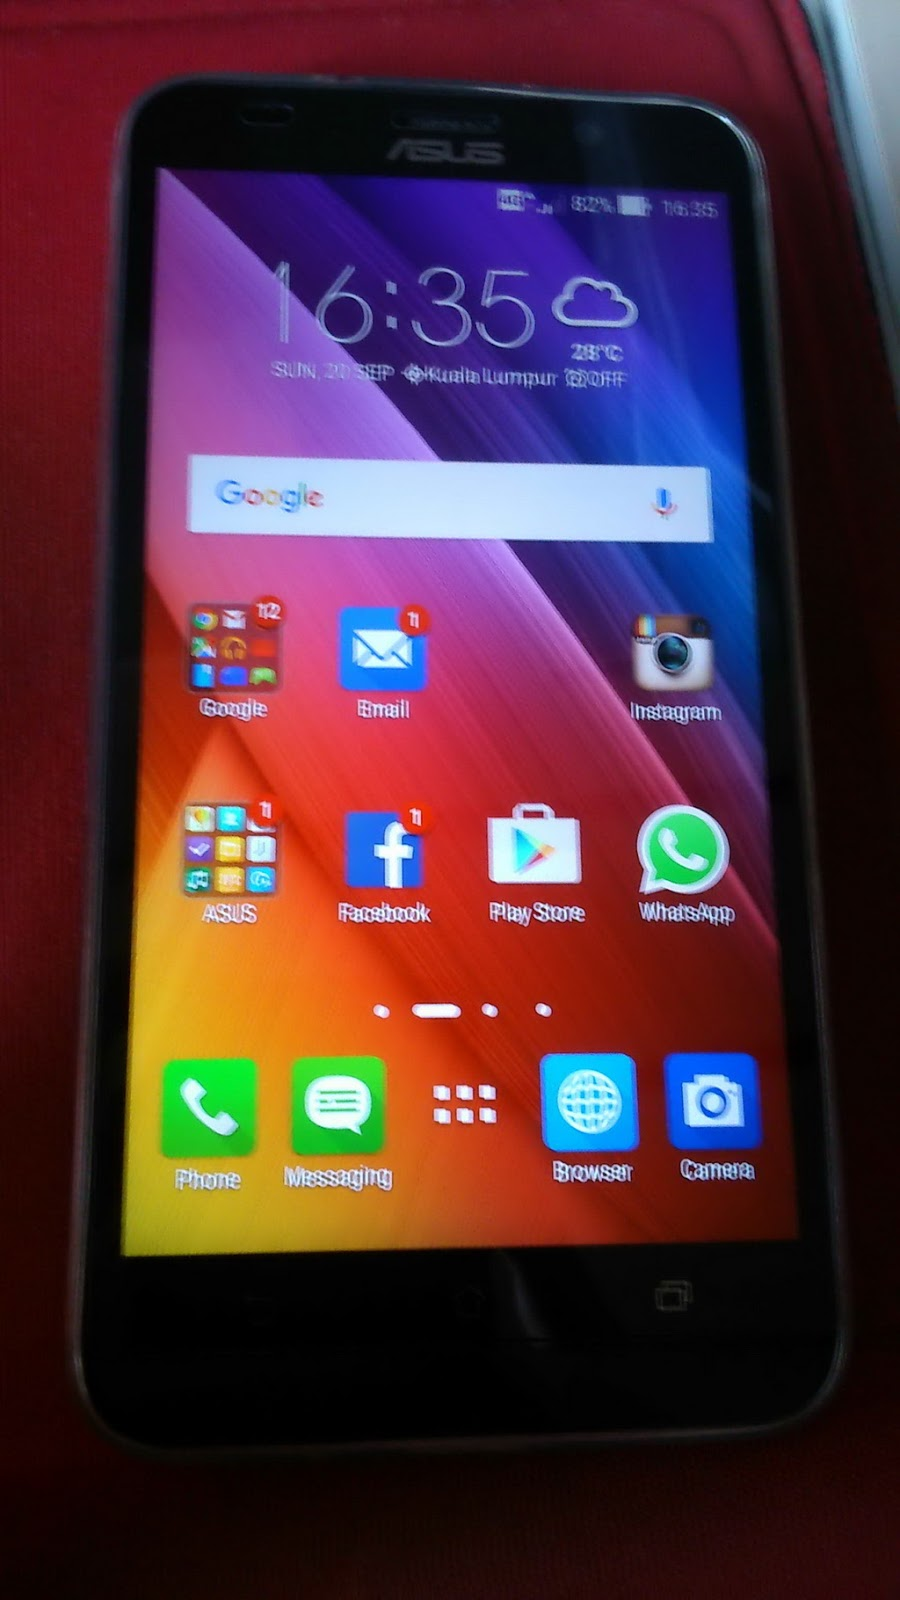 Cartech Guide Asus Zenfone 2 Ze551ml Review 2gb 16 Then Look No Further Than This Smartphone Is Now Sold Globally And It Clearly Shows That Consumers Are Picking Up